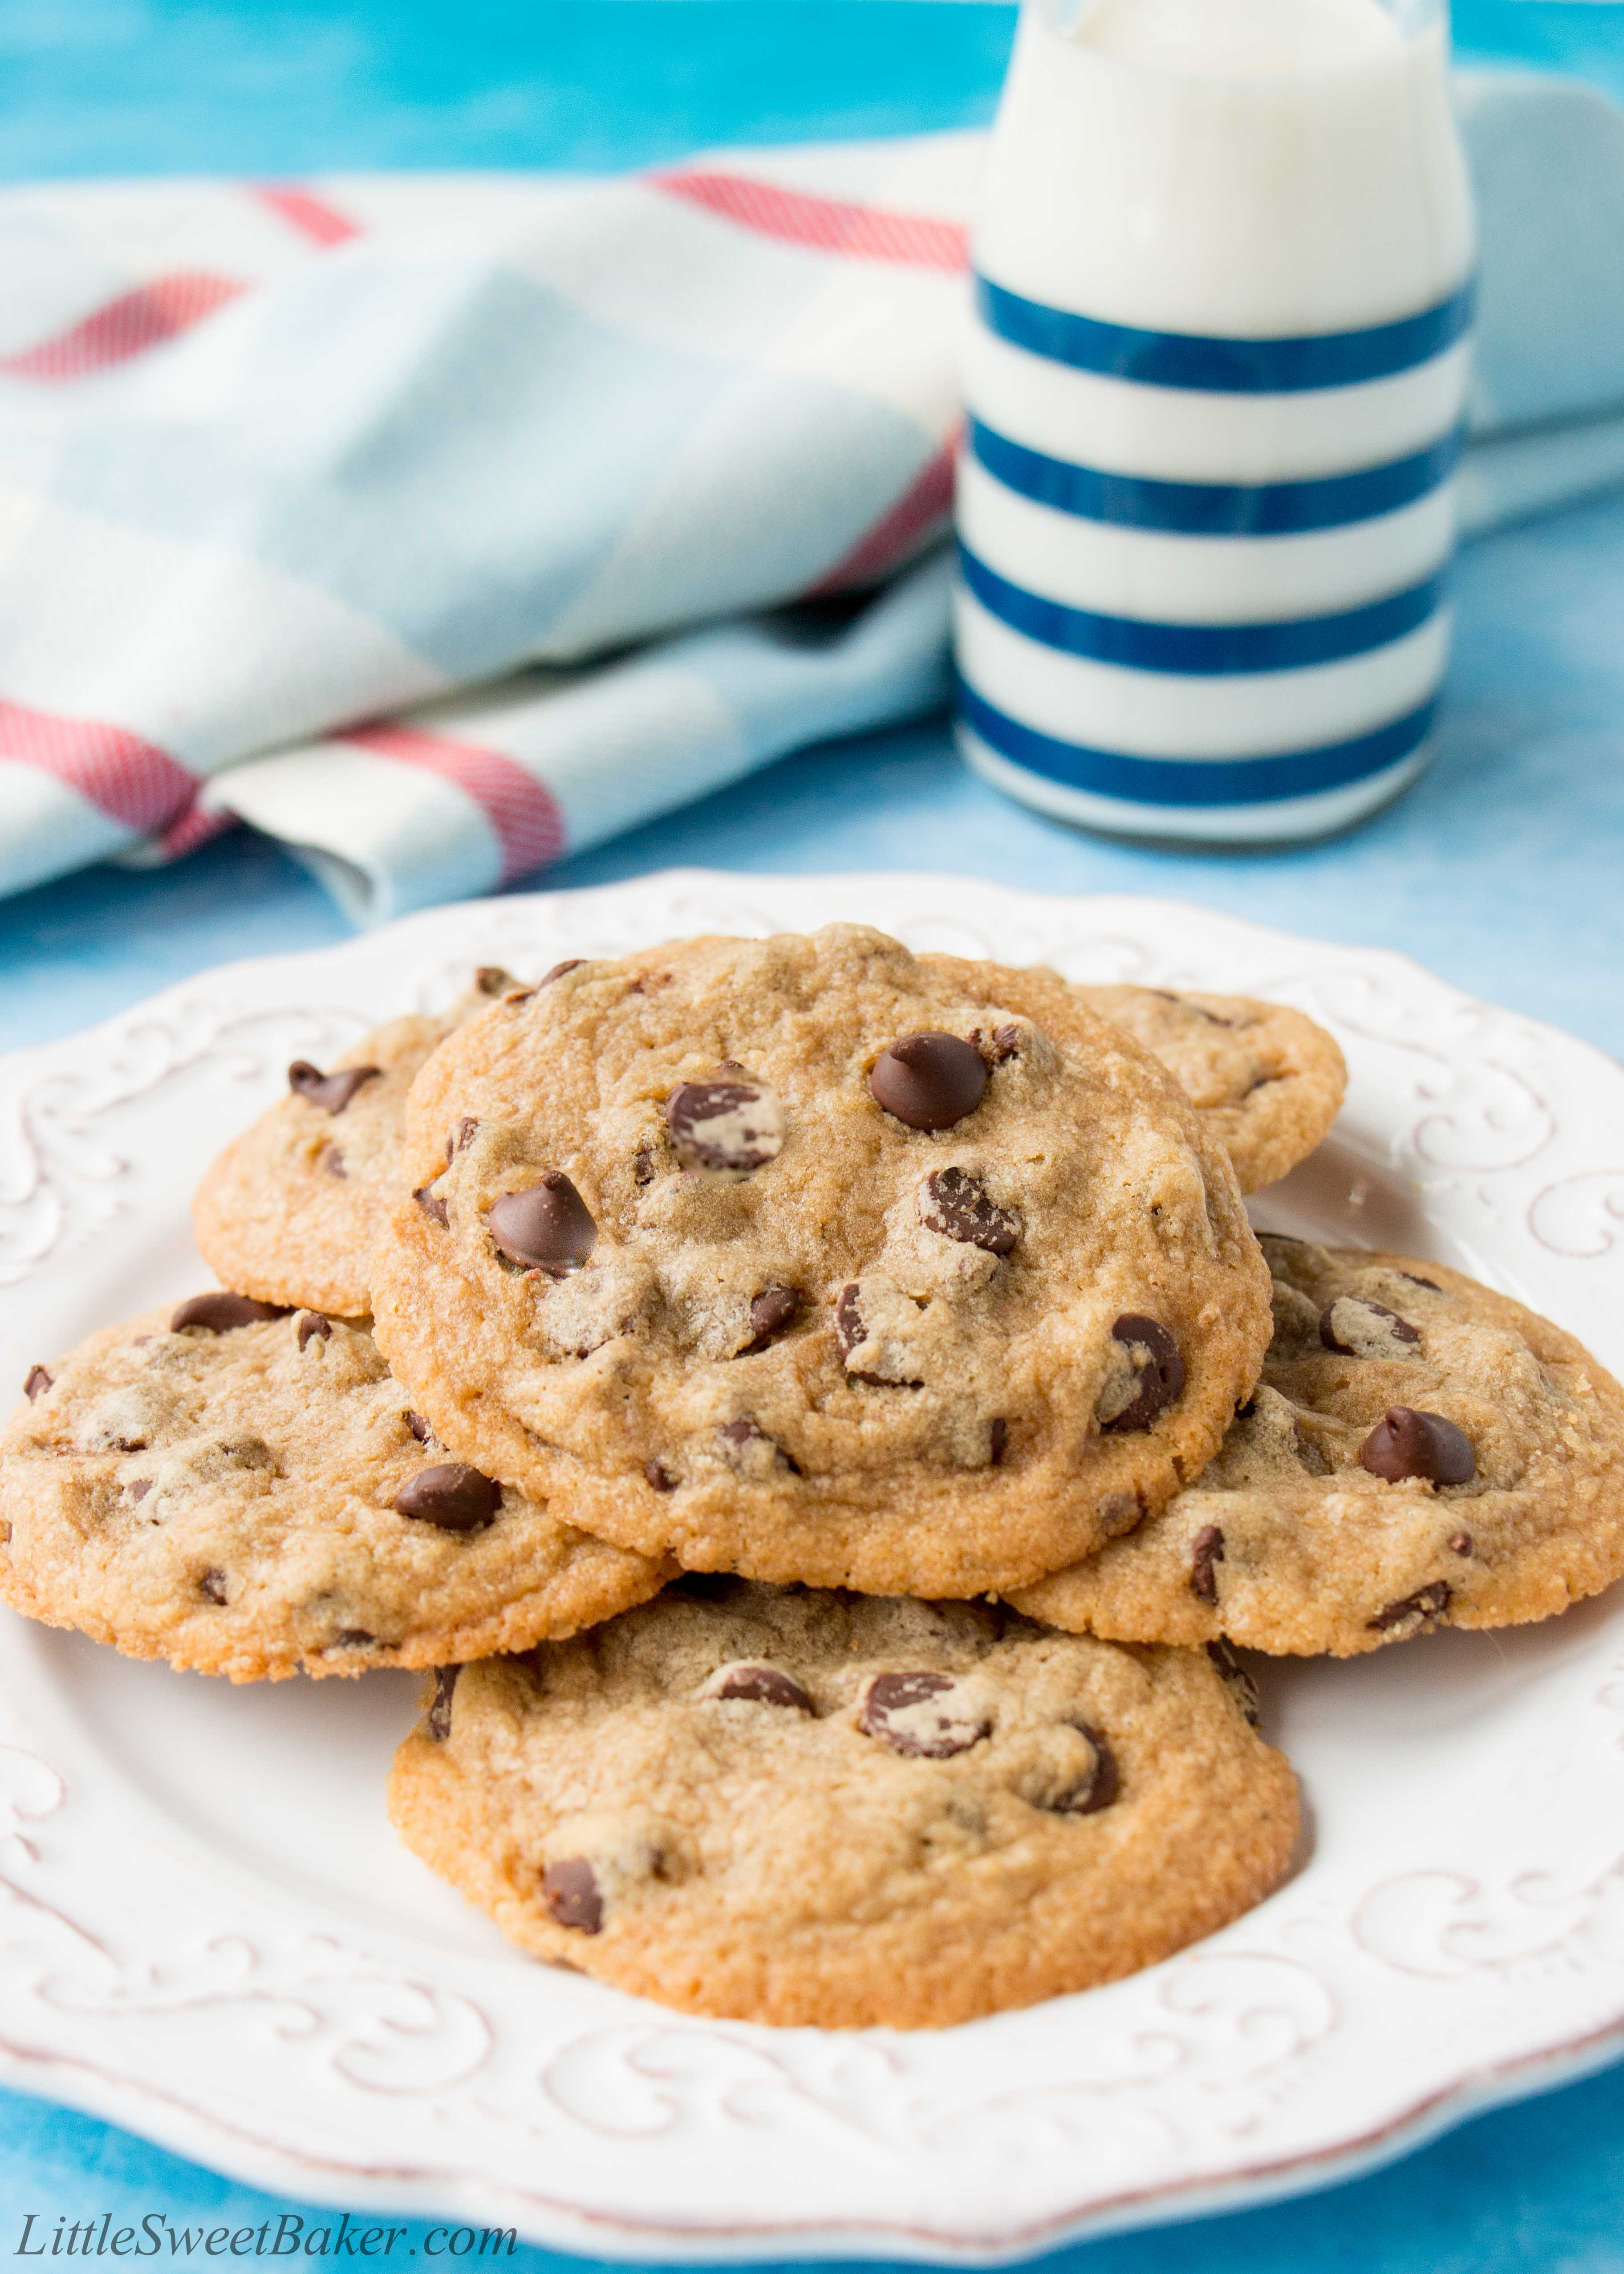 Quick Chocolate Chip Cookies  Easy Chocolate Chip Cookies video Little Sweet Baker